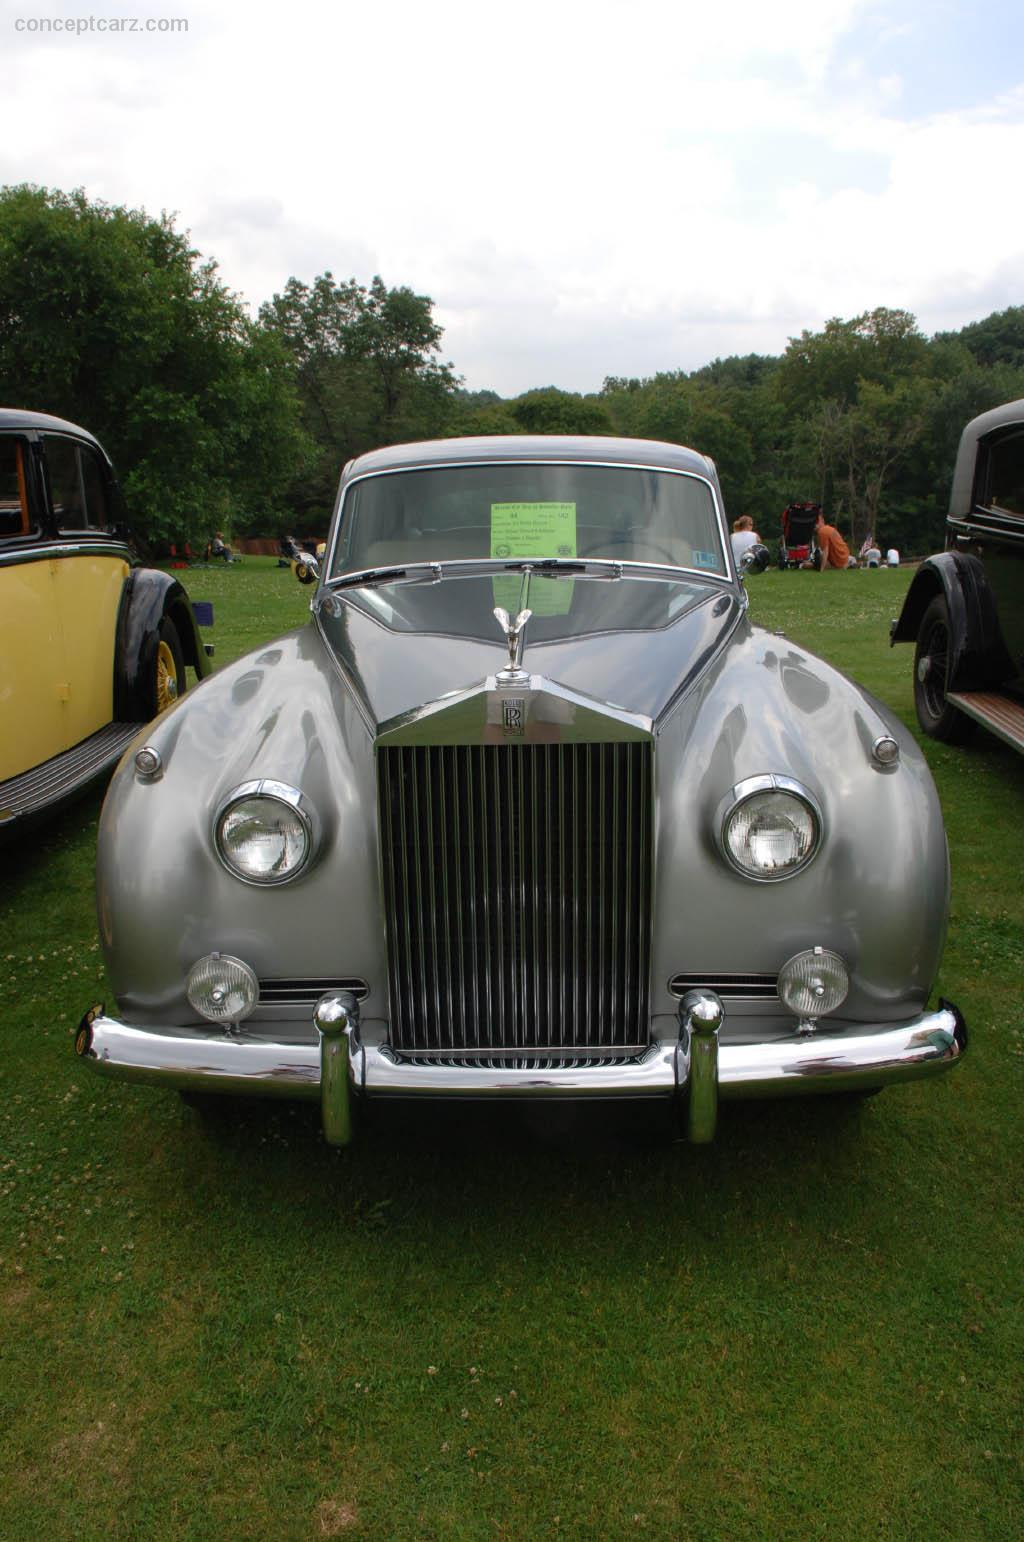 1961 rolls royce silver cloud ii at the pittsburgh vintage grand prix car show. Black Bedroom Furniture Sets. Home Design Ideas